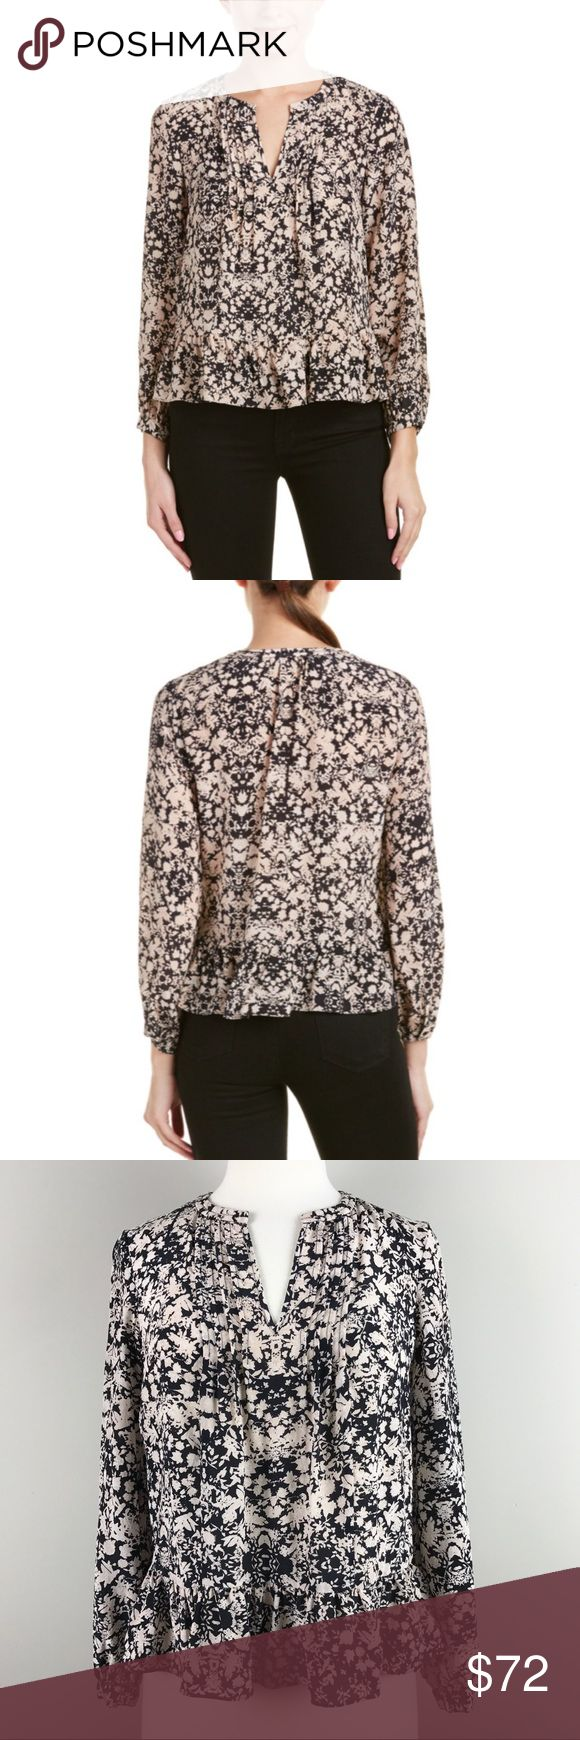 "{Rebecca Taylor} Pot Paisley Ruffle Silk Top Fabric Content: 100% silk. - V-Neck - Pintuck pleated front detailing - Single button cuffs - Ruffle hem - Pullover style - Color/pattern: ecru and black  Armpit to Armpit: 19"" Length: 22.5"", shoulder to hem, Armpit to Hem: 13"" Shoulders: 14.75"" Sleeve Length: 21.5"", Armpit to Cuff: 16"" Dry clean * Condition: Excellent used condition. Material/Care tag has been removed.  **B8 Rebecca Taylor Tops Blouses"